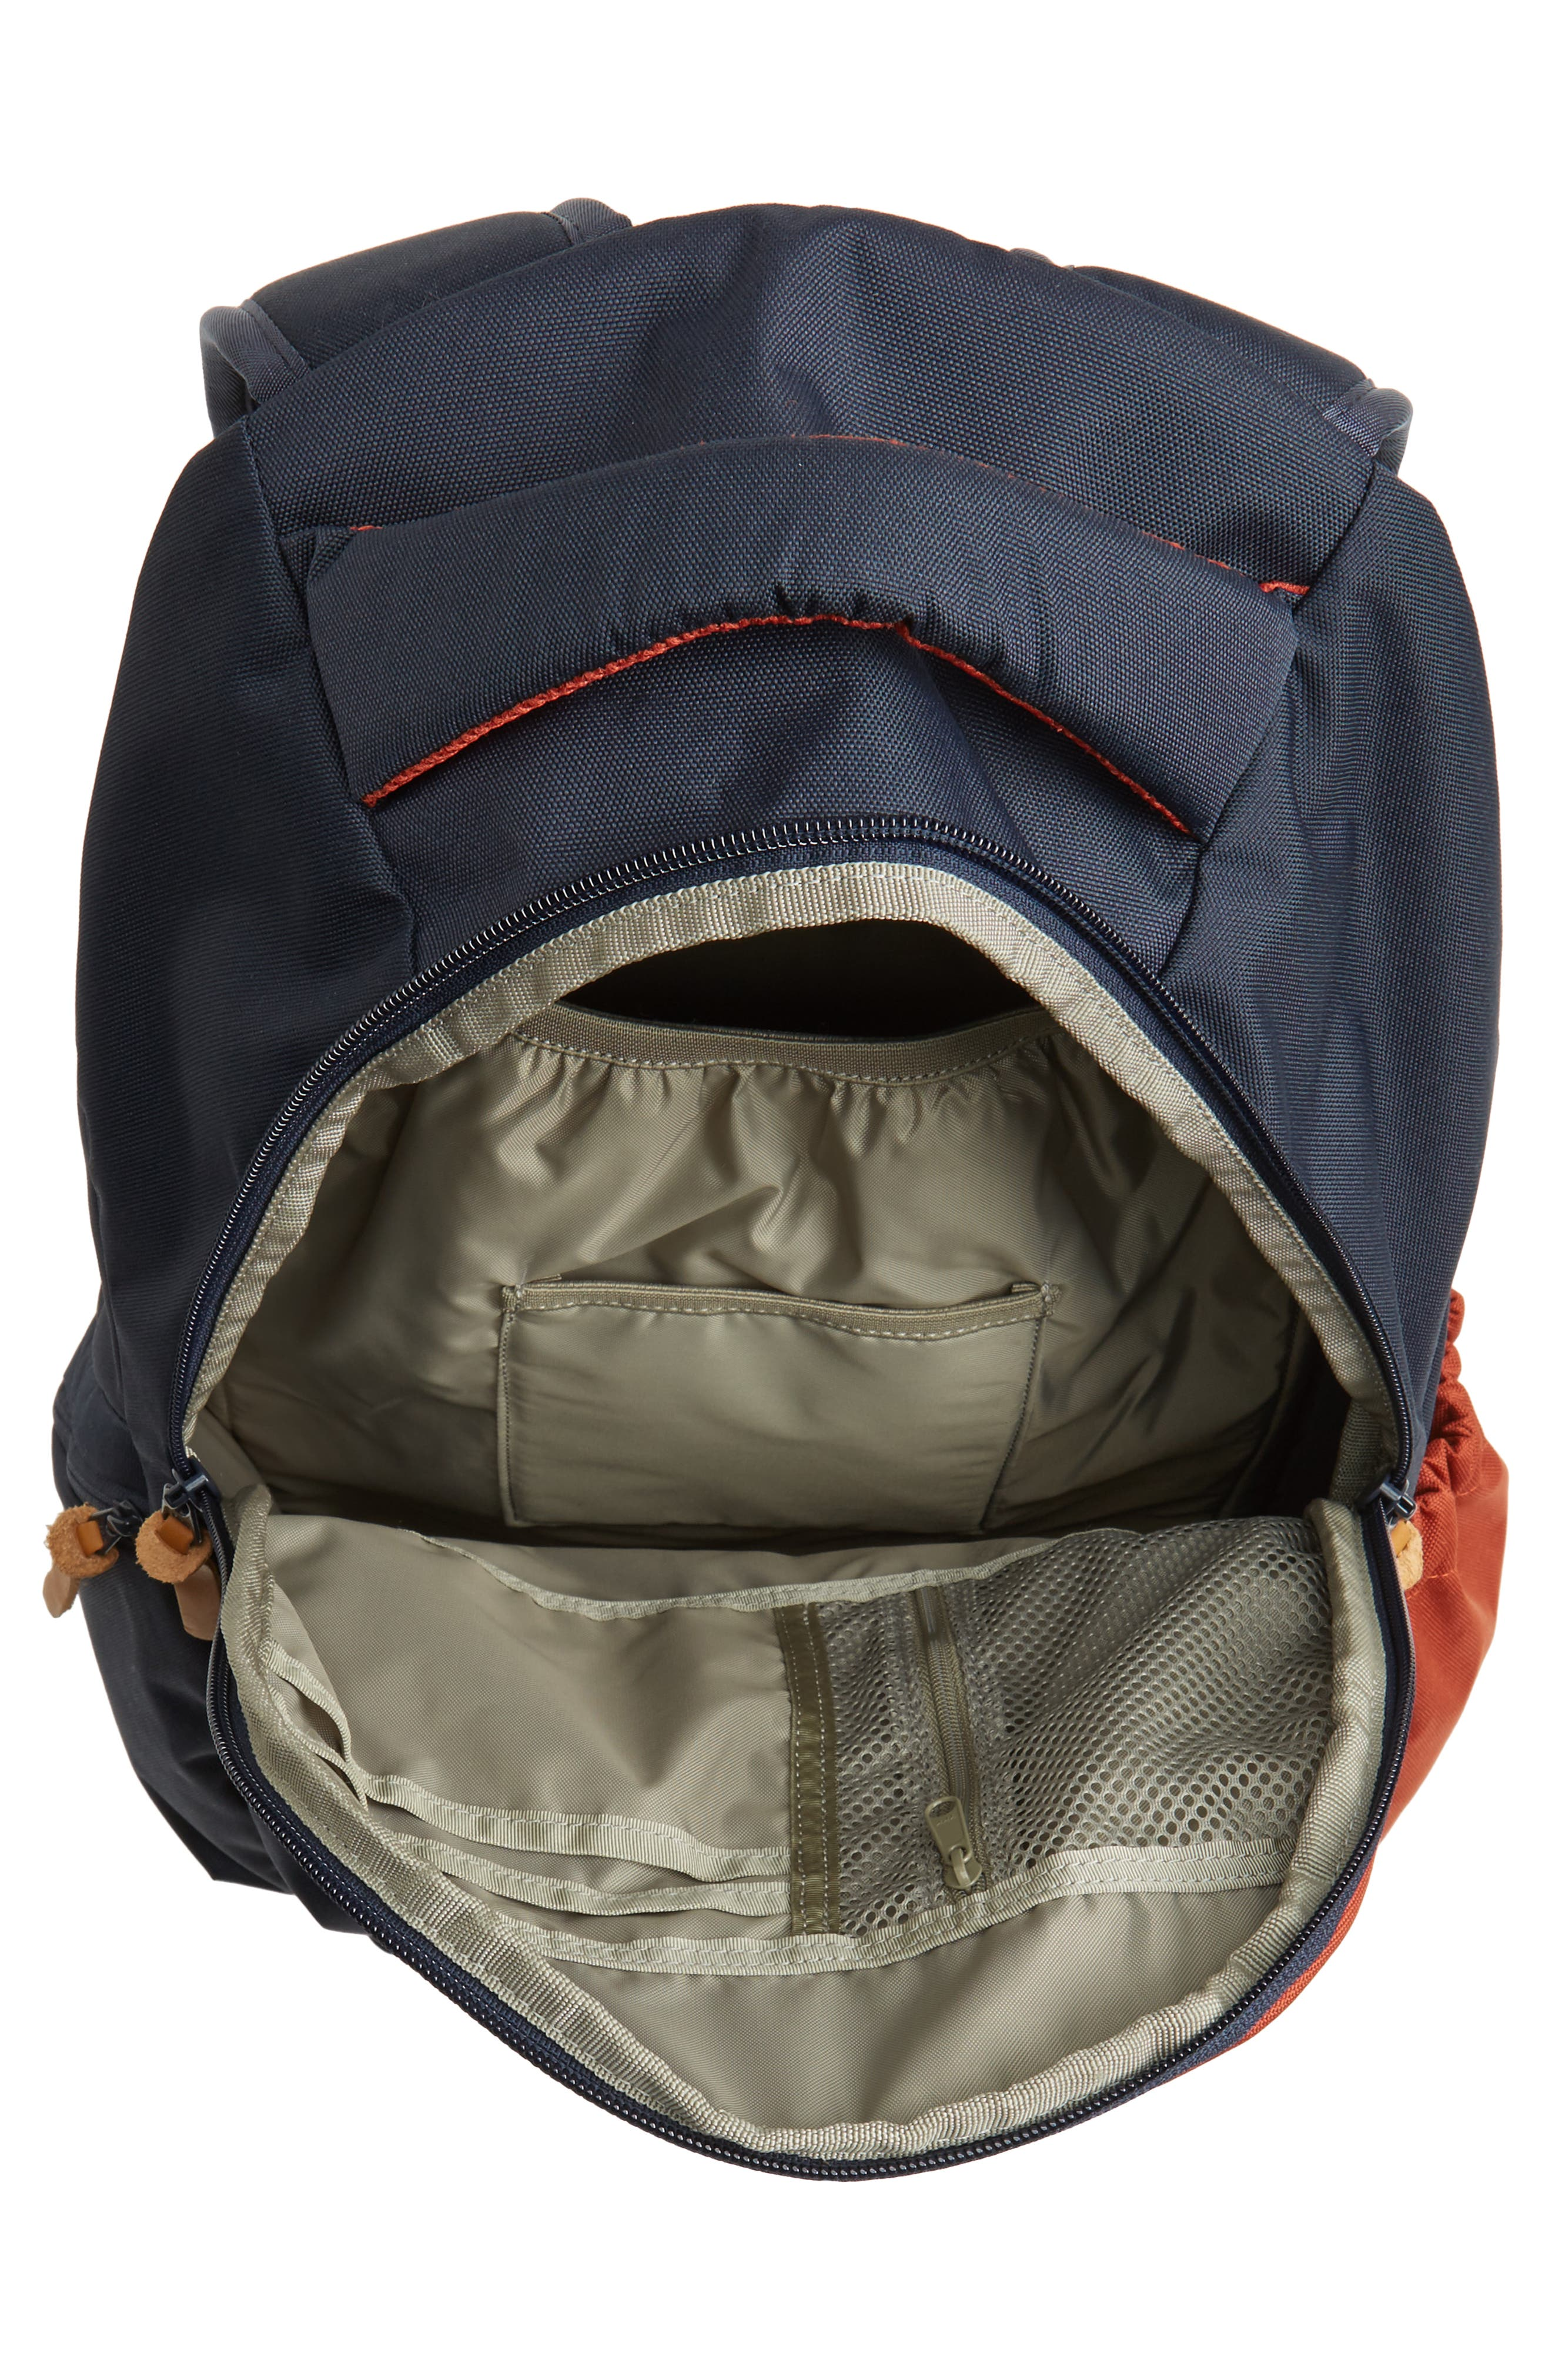 Rift Backpack,                             Alternate thumbnail 3, color,                             Navy/ Rust